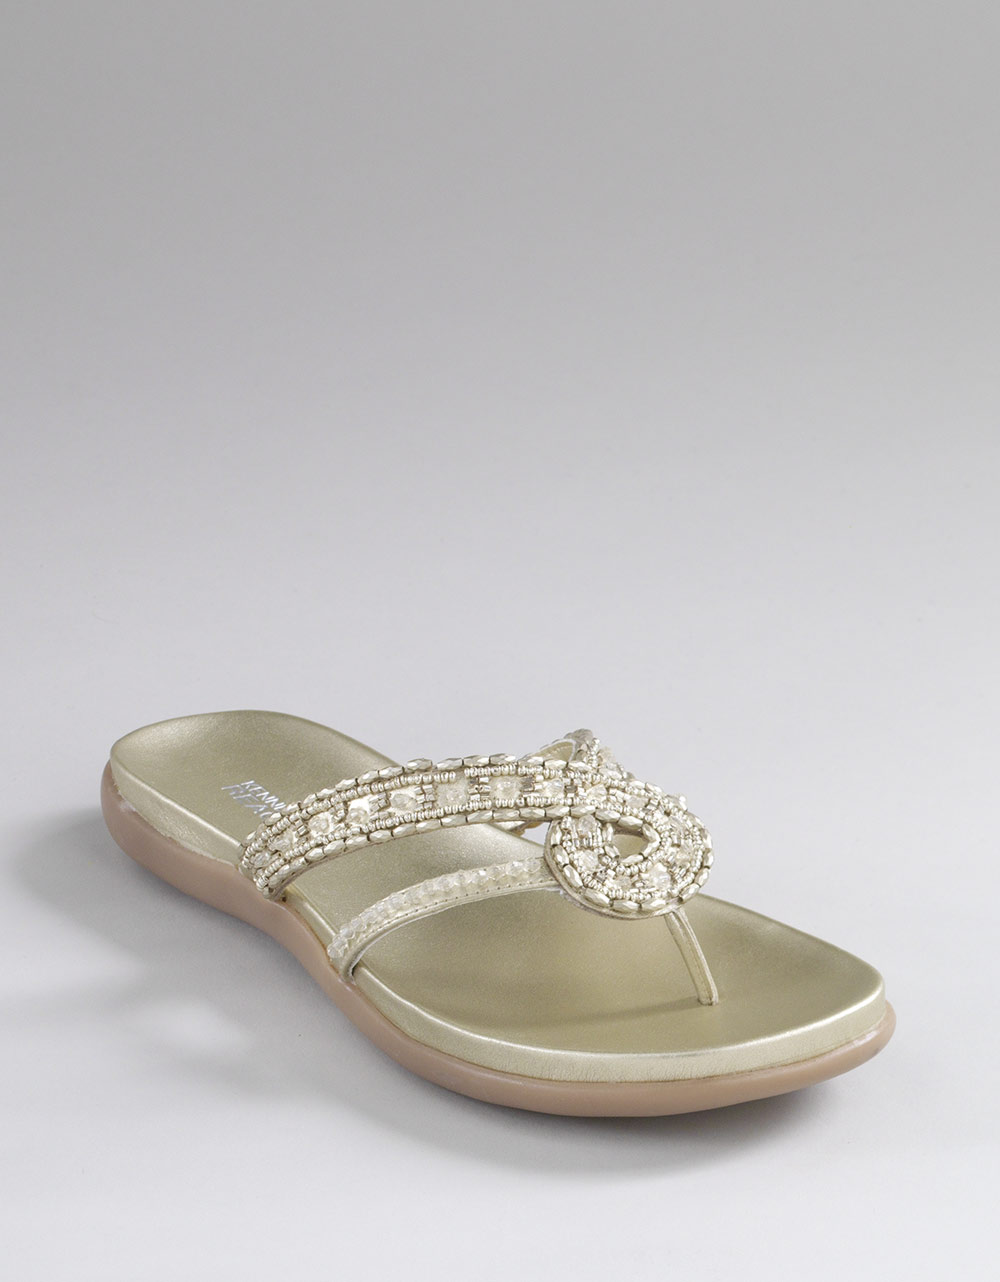 5a3d57ea730552 Kenneth Cole Reaction Glam Life Beaded Sandals in Metallic - Lyst